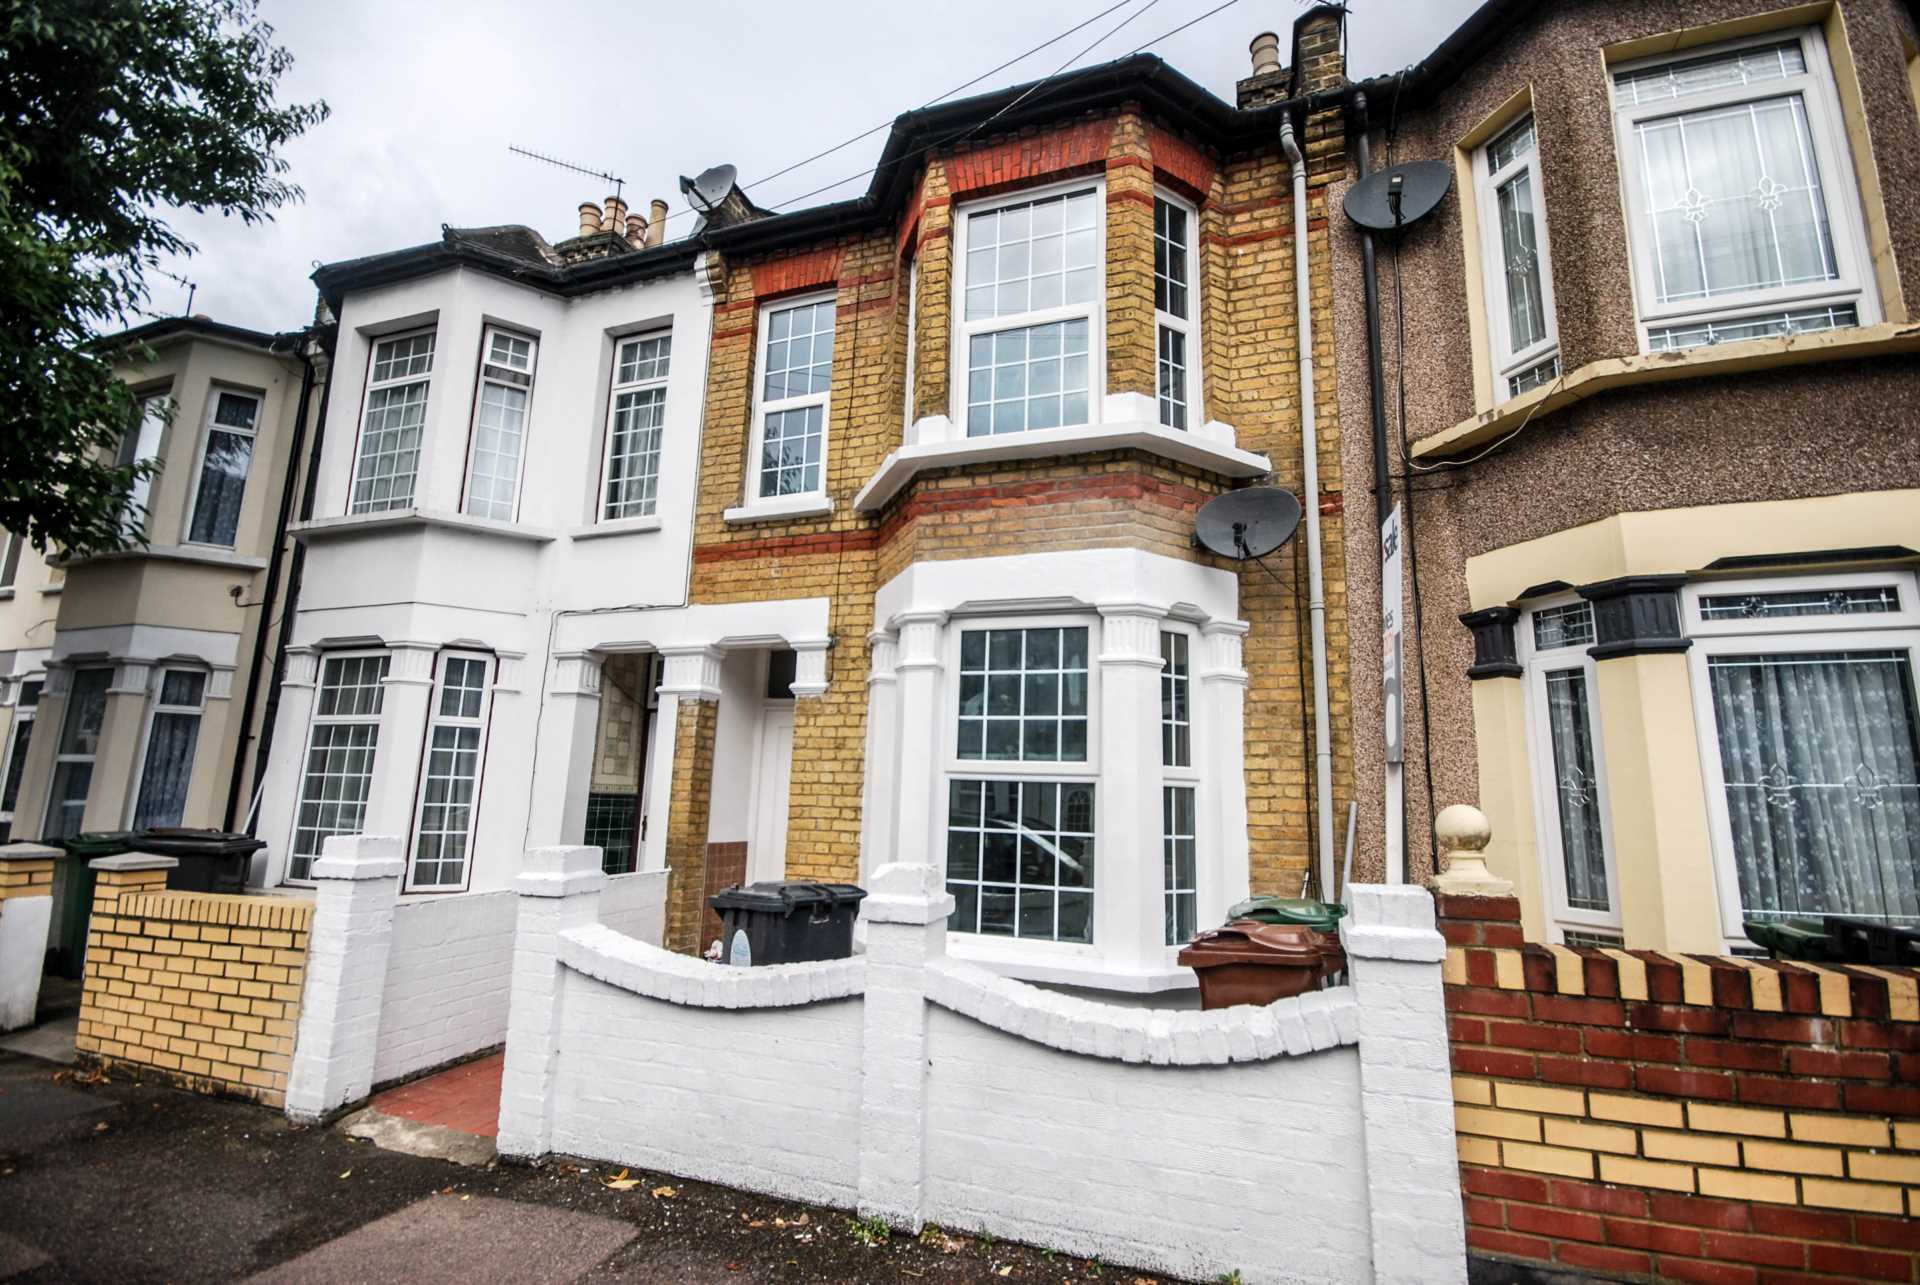 St Georges Road, LEYTON, Image 21